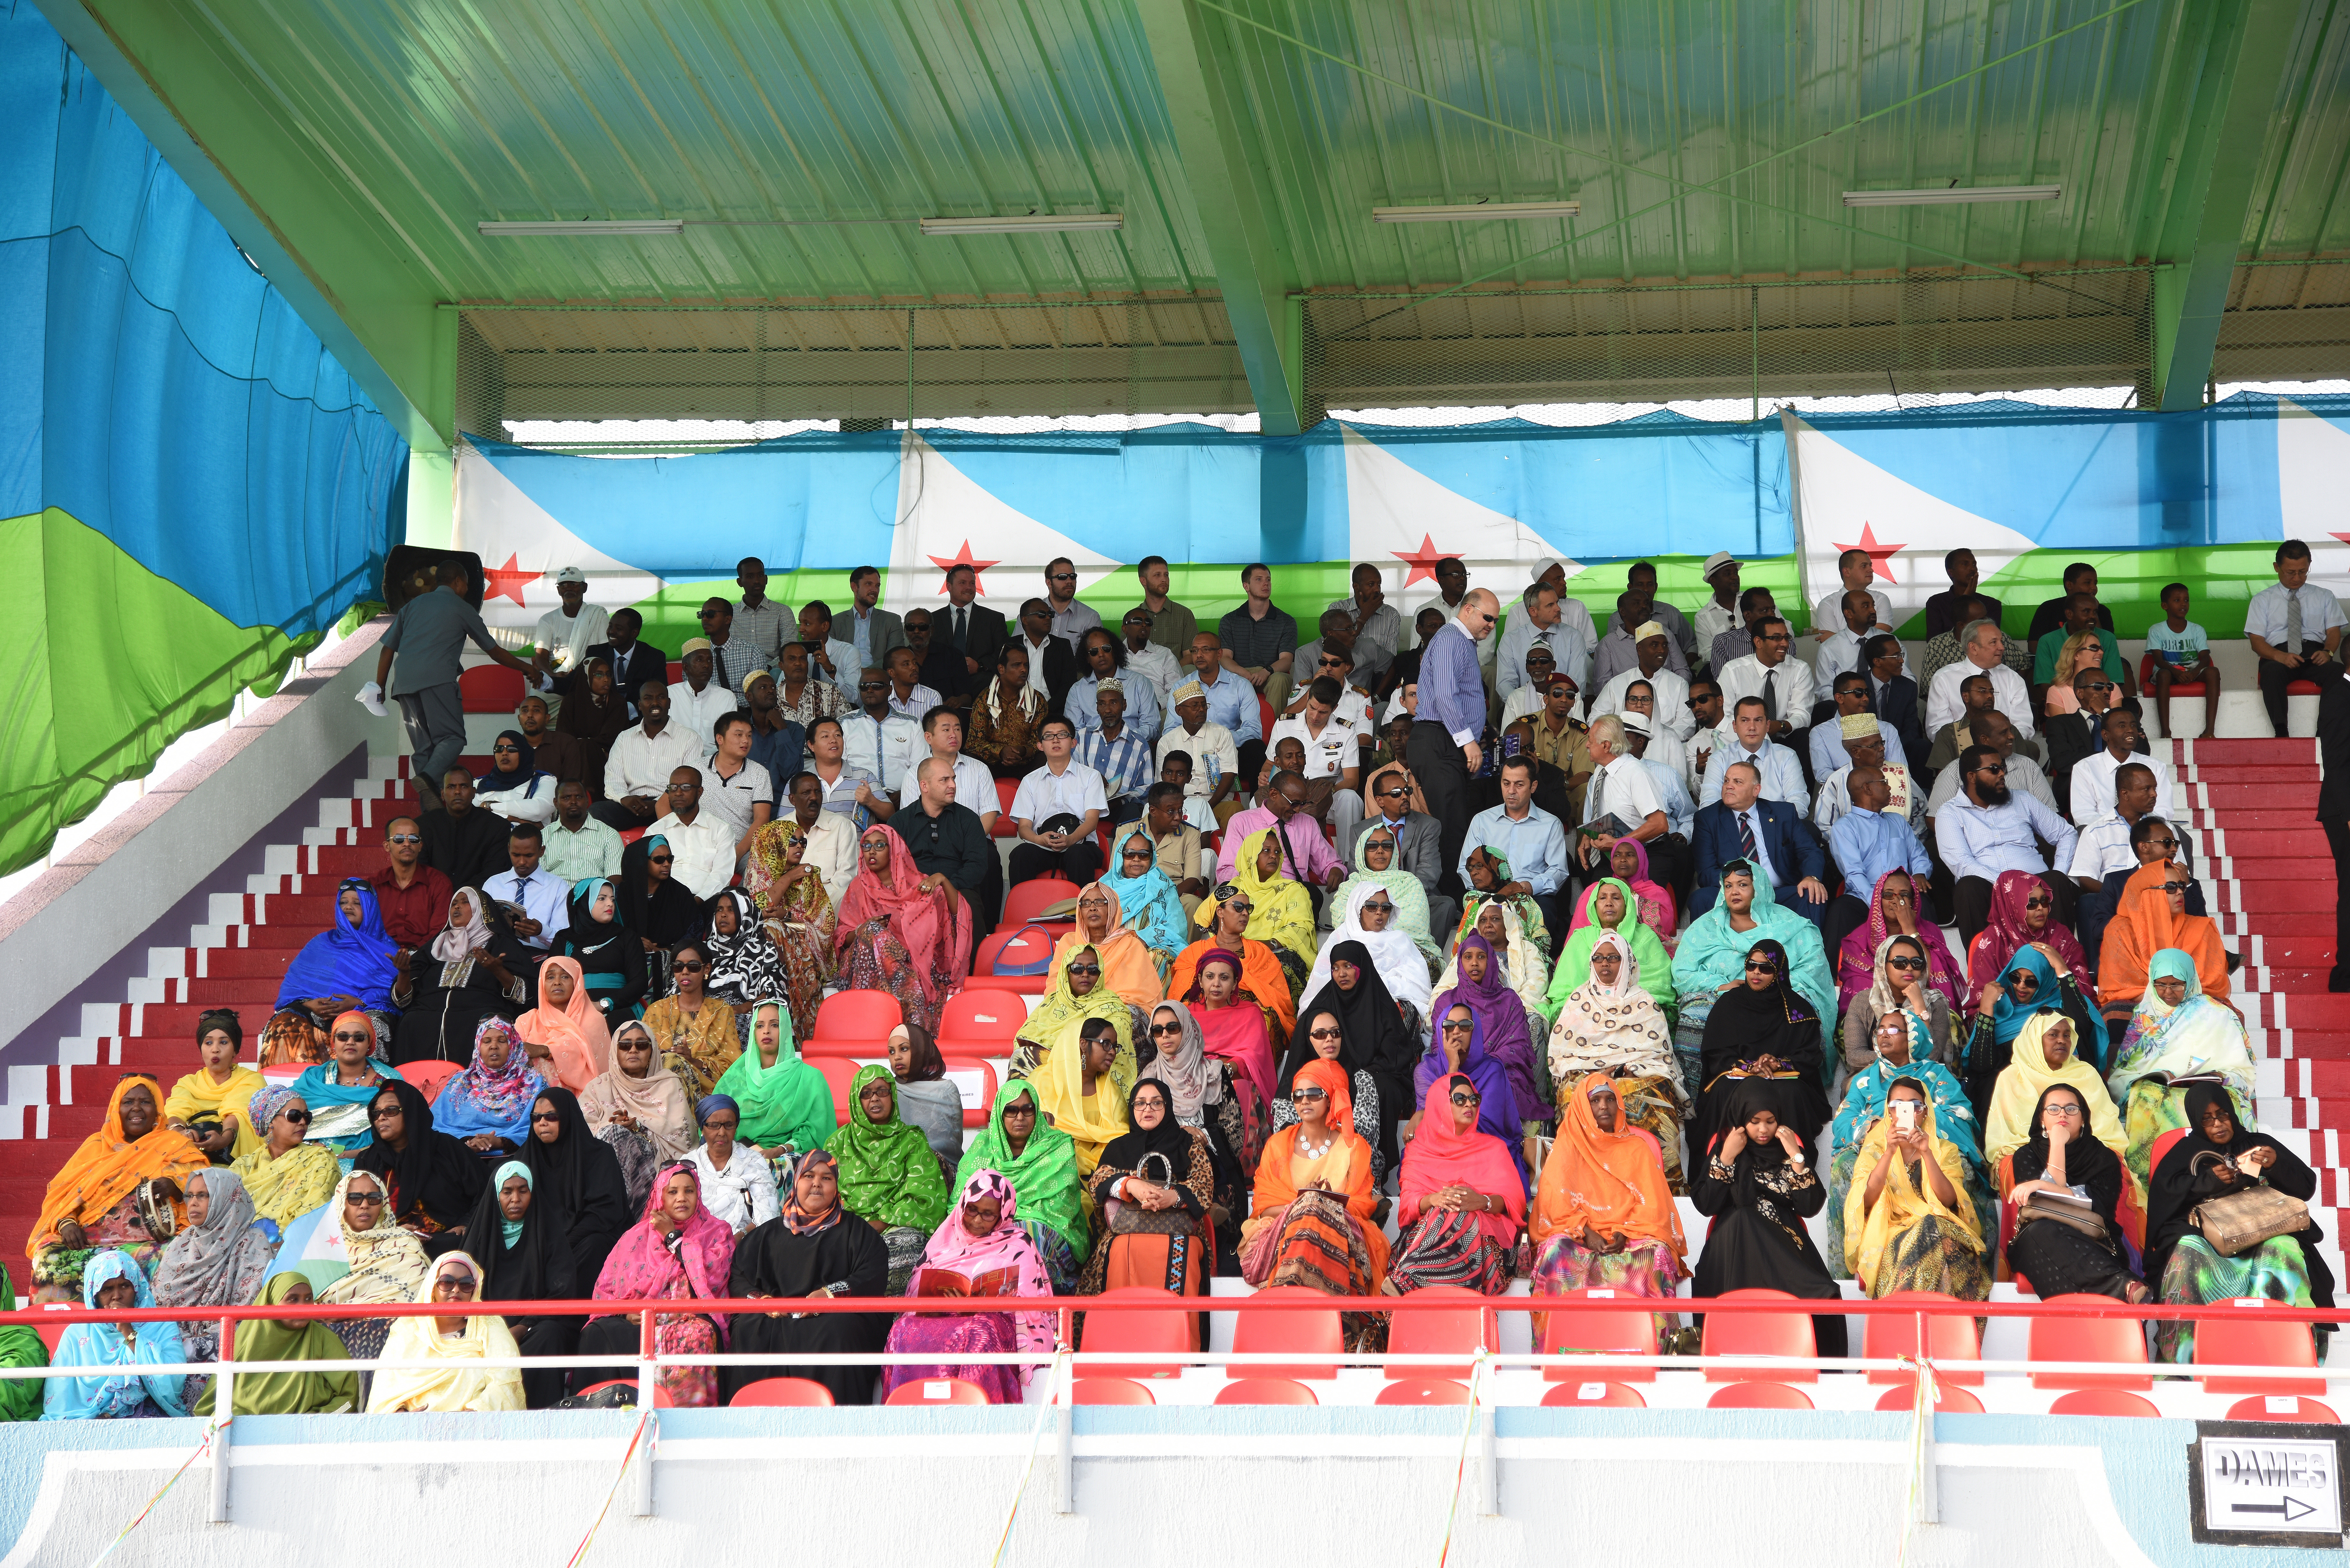 Djiboutian citizens attend an independence day celebration June 27, 2015, commemorating the 38th anniversary of Djibouti declaring its emancipation from France.  The military parade included a marching band and troops showcasing its different military equipment.  (U.S. Air Force photo by Staff Sgt. Maria Bowman)